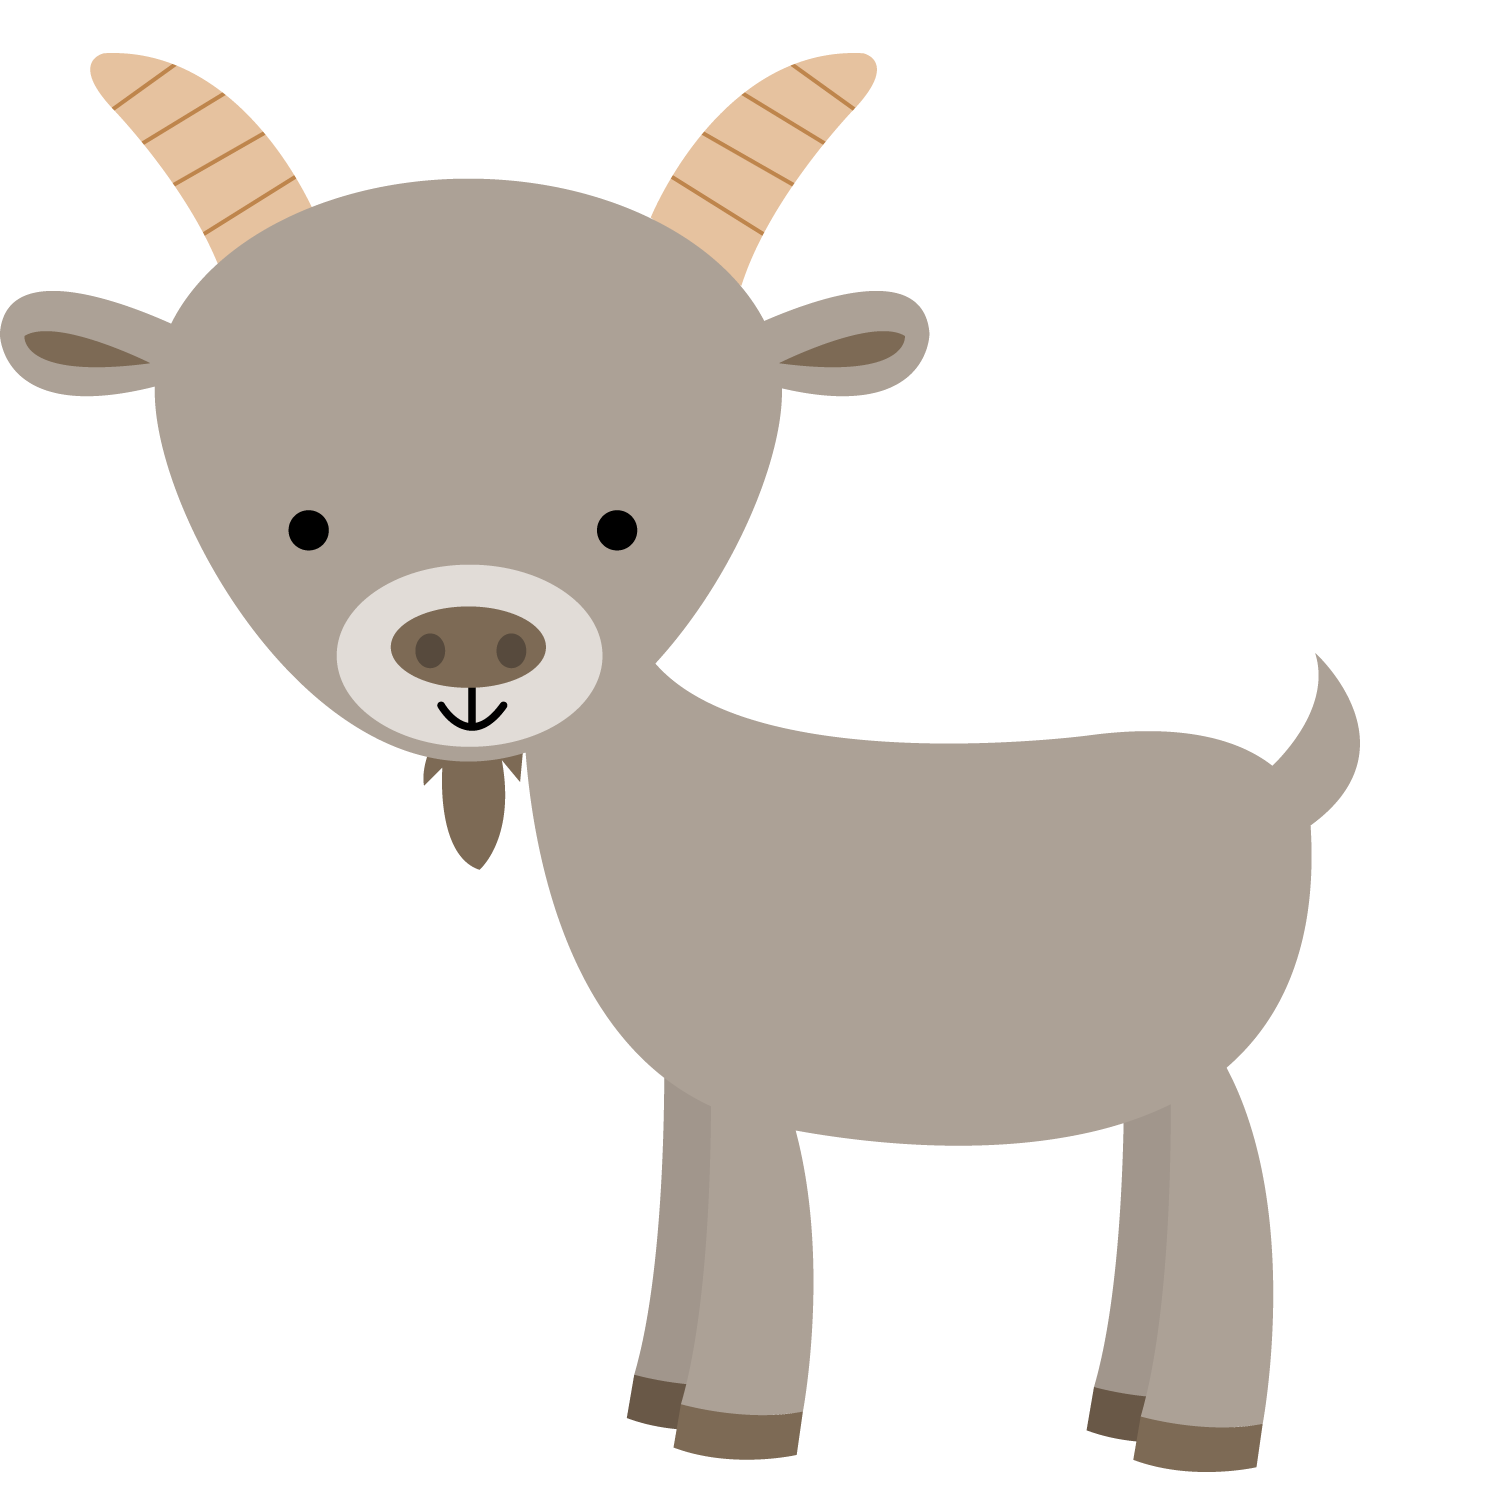 Kid awesome farm animals. Goat clipart kambing